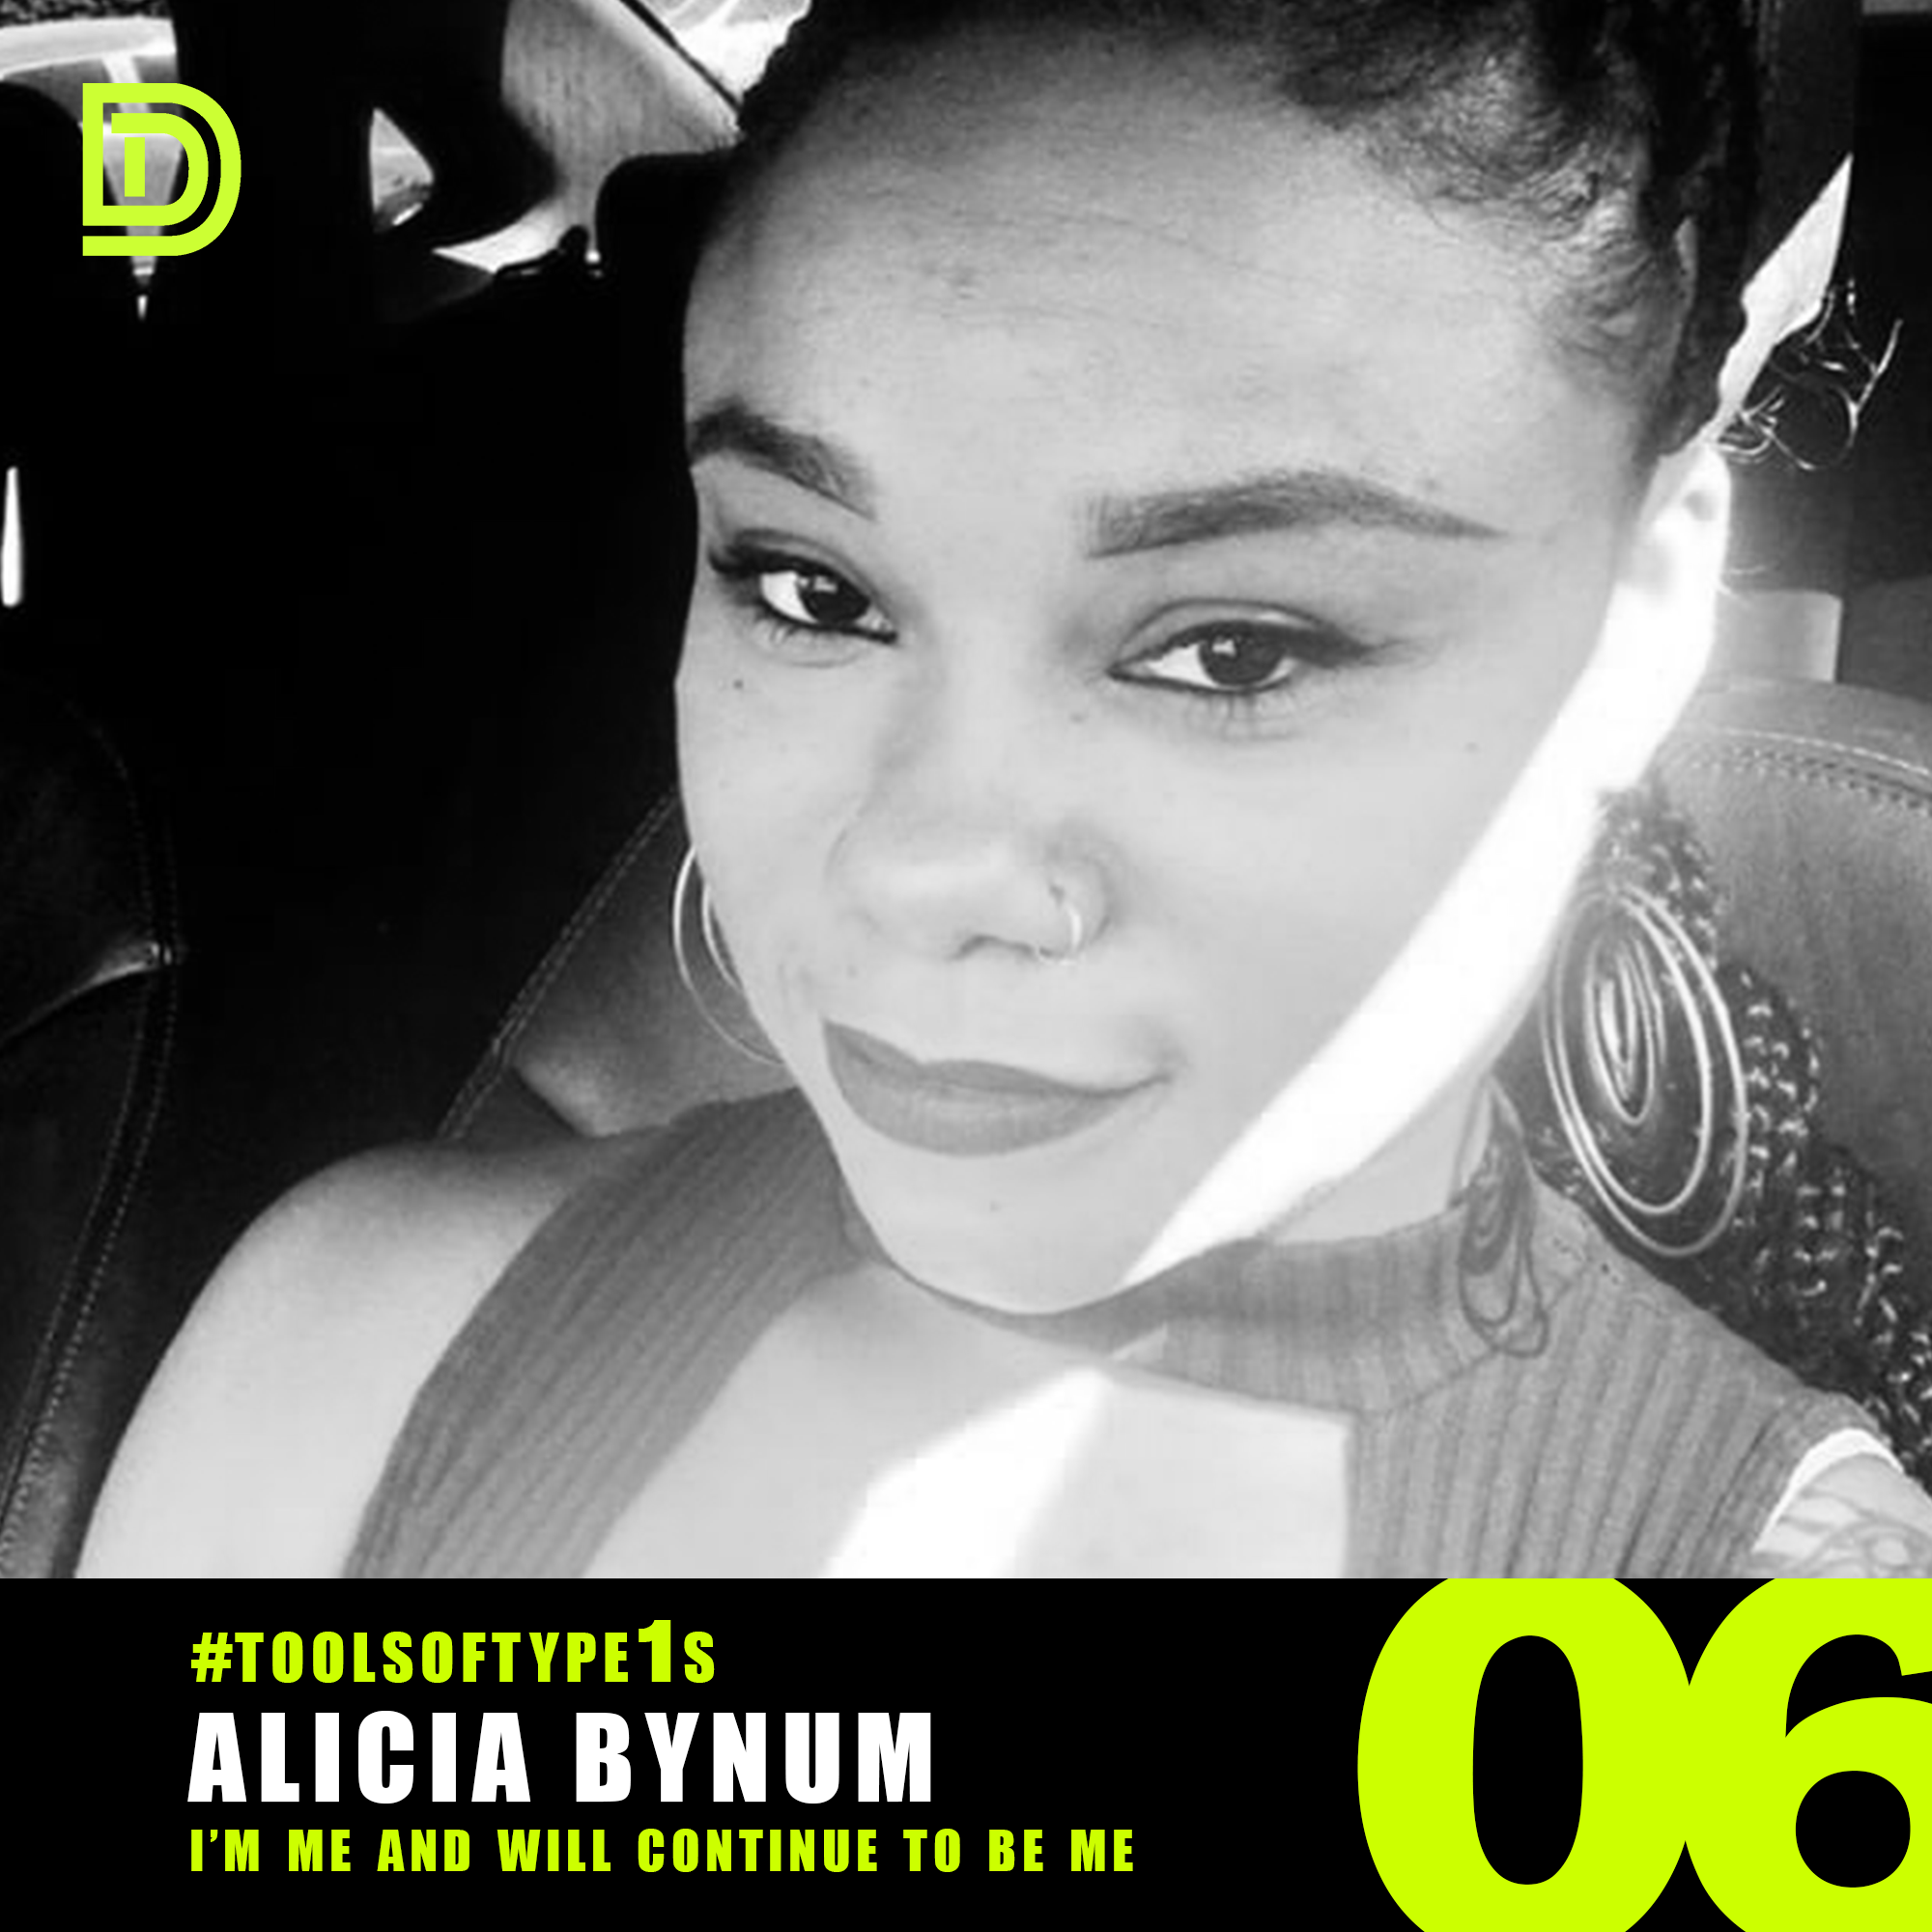 06_Alicia Bynum (1).png